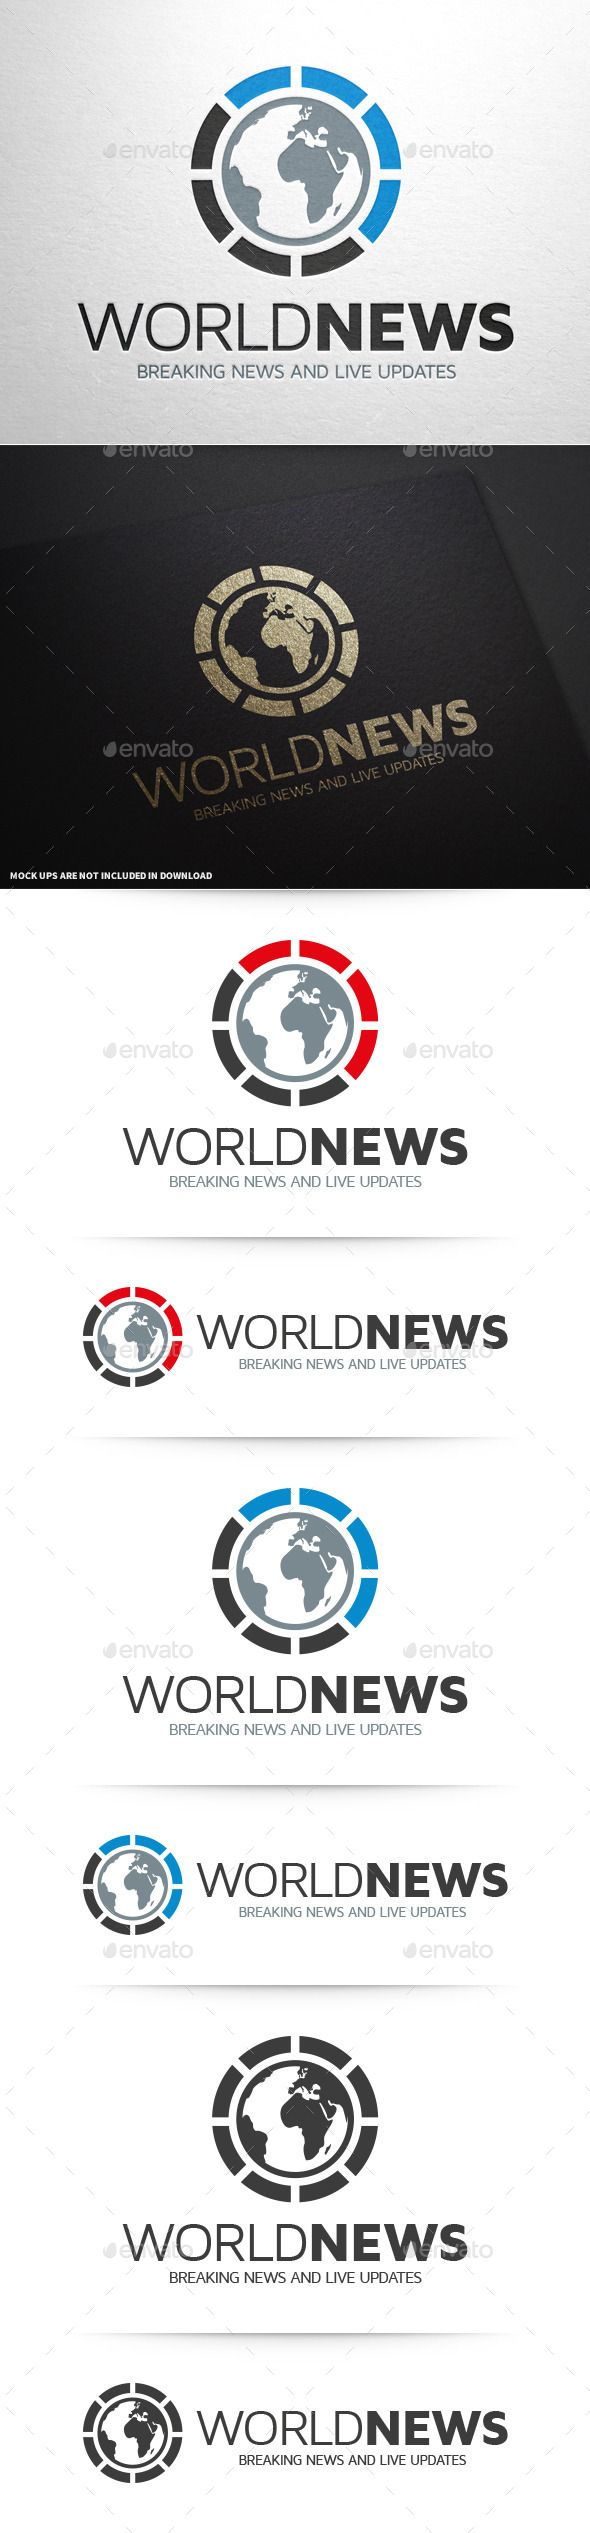 World News Logo Template — Vector EPS #agency #world • Available here → https://graphicriver.net/item/world-news-logo-template/10313780?ref=pxcr